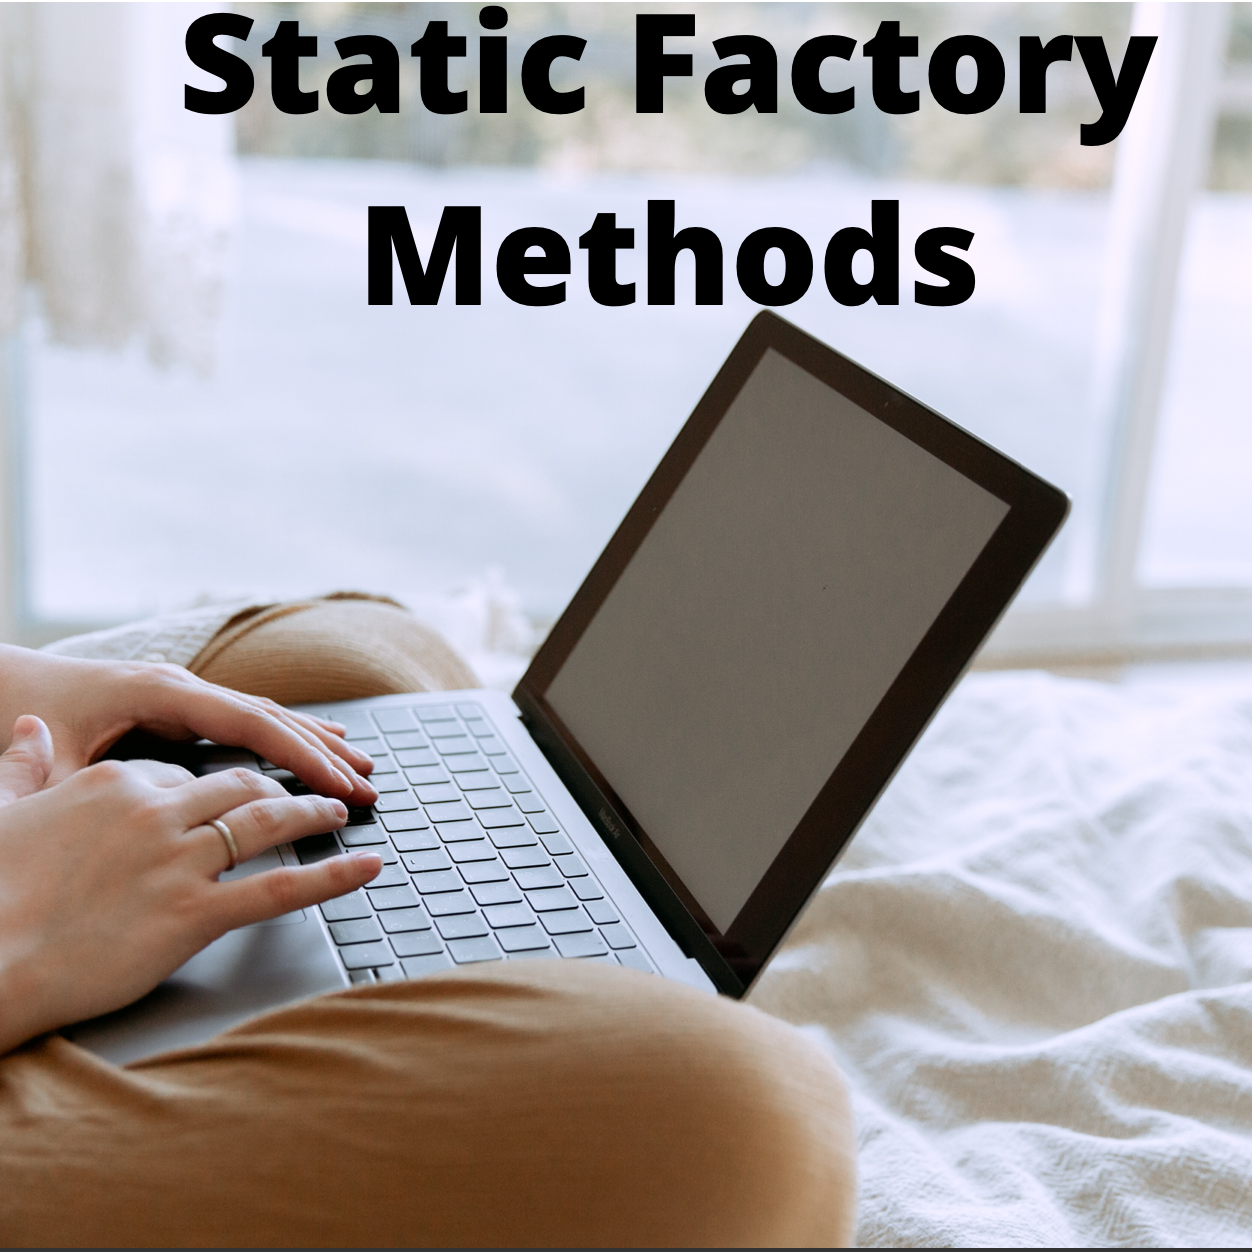 Consider static factory methods instead of constructors when creating objects